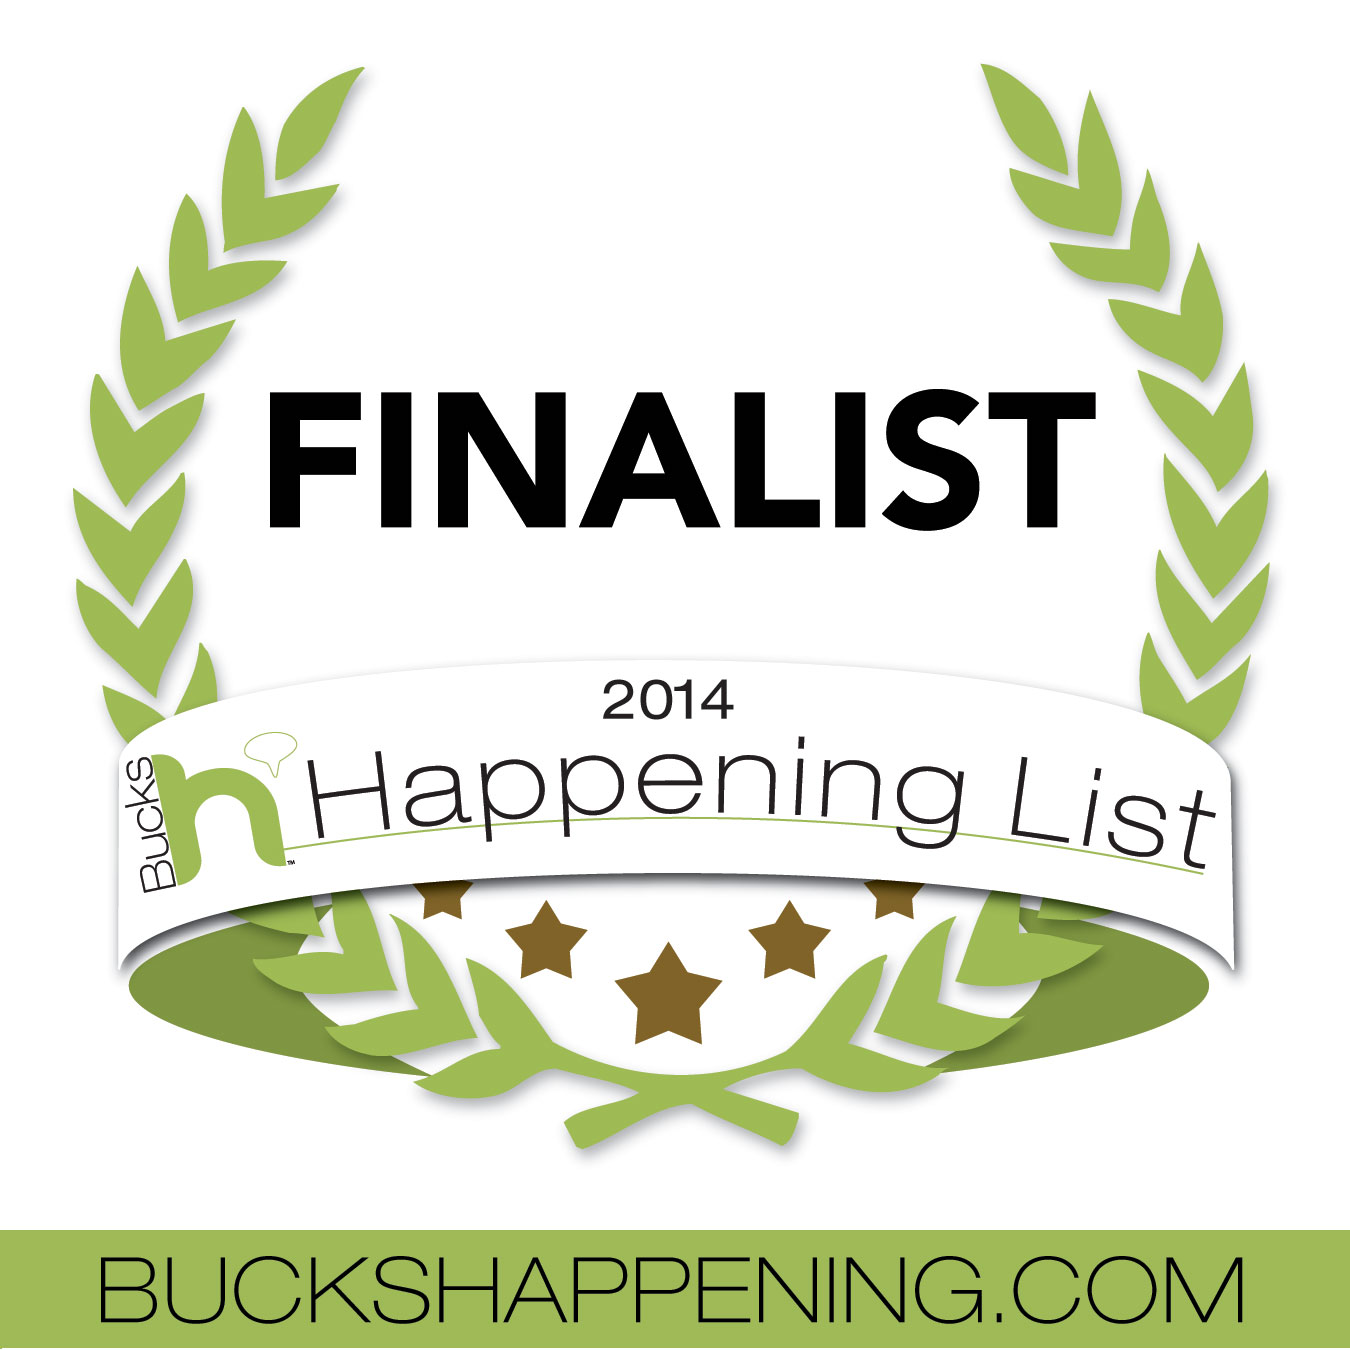 Bucks County Wedding Invitations | 2014 Bucks Happening List Finalist